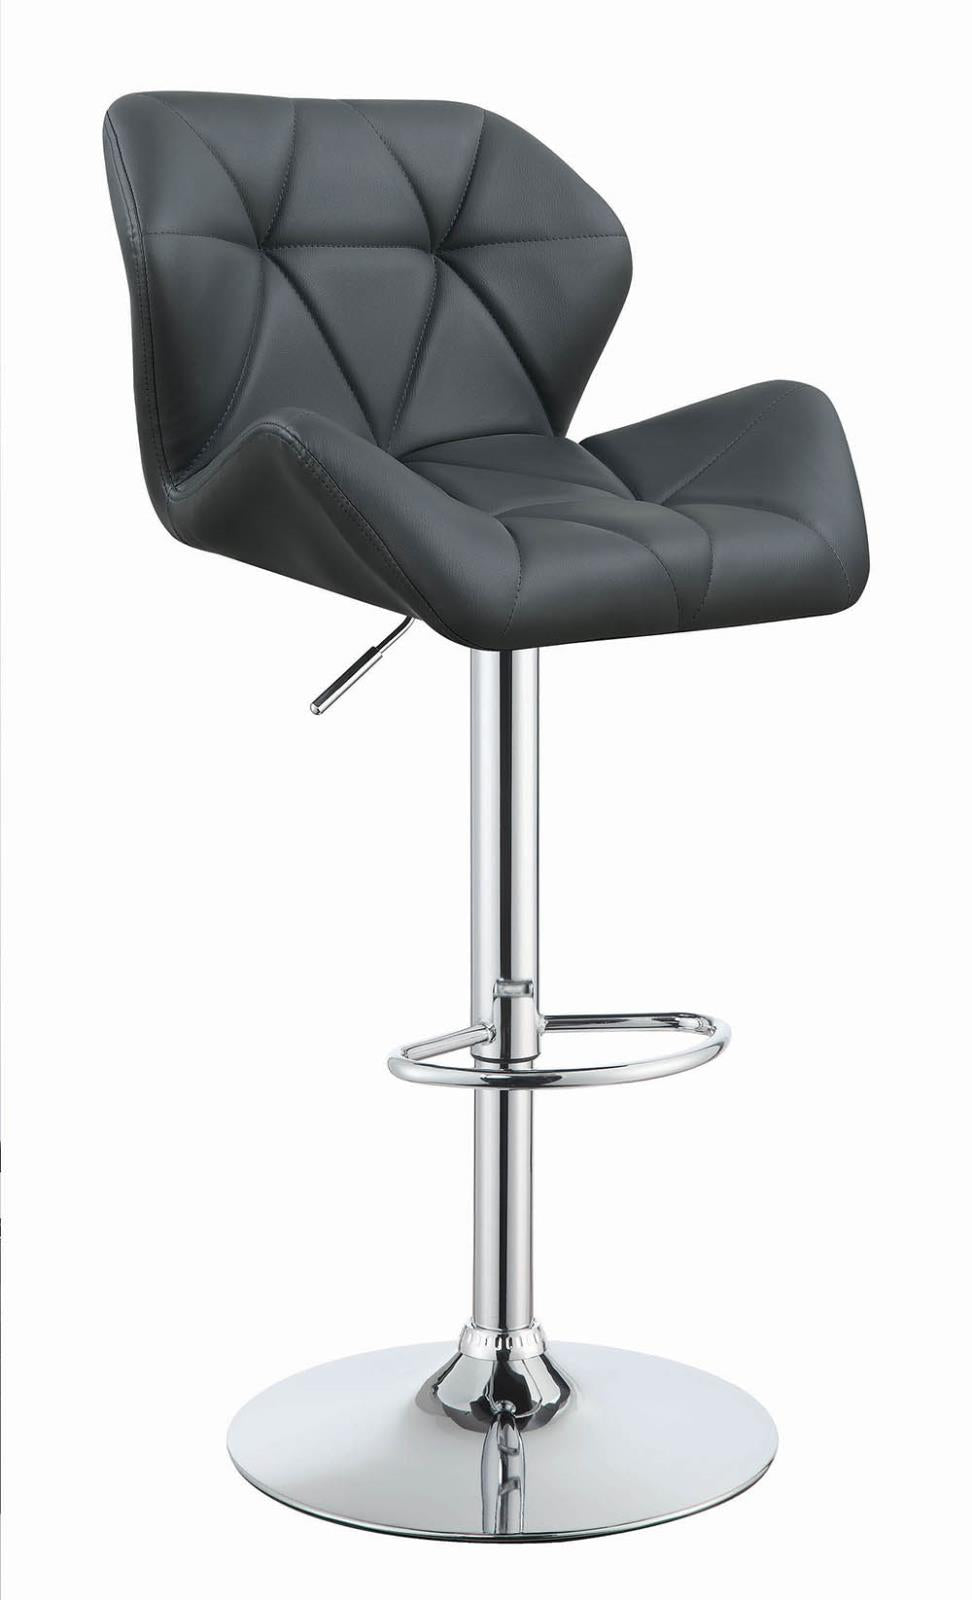 G100426 Contemporary Grey Adjustable Bar Stool image